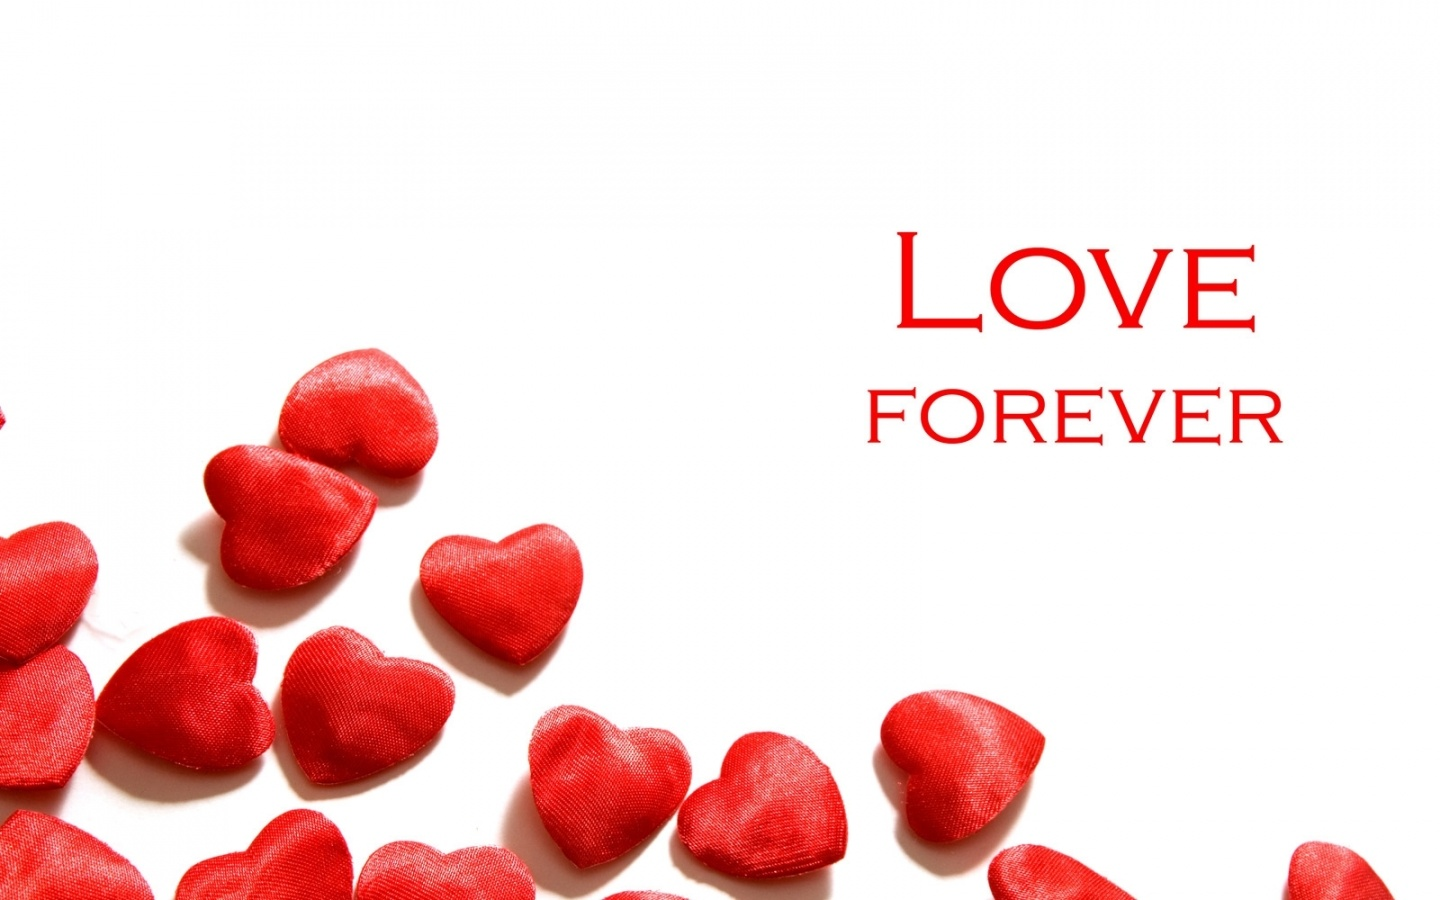 Valentines Day Love Forever Wallpapers 1440x900 229281